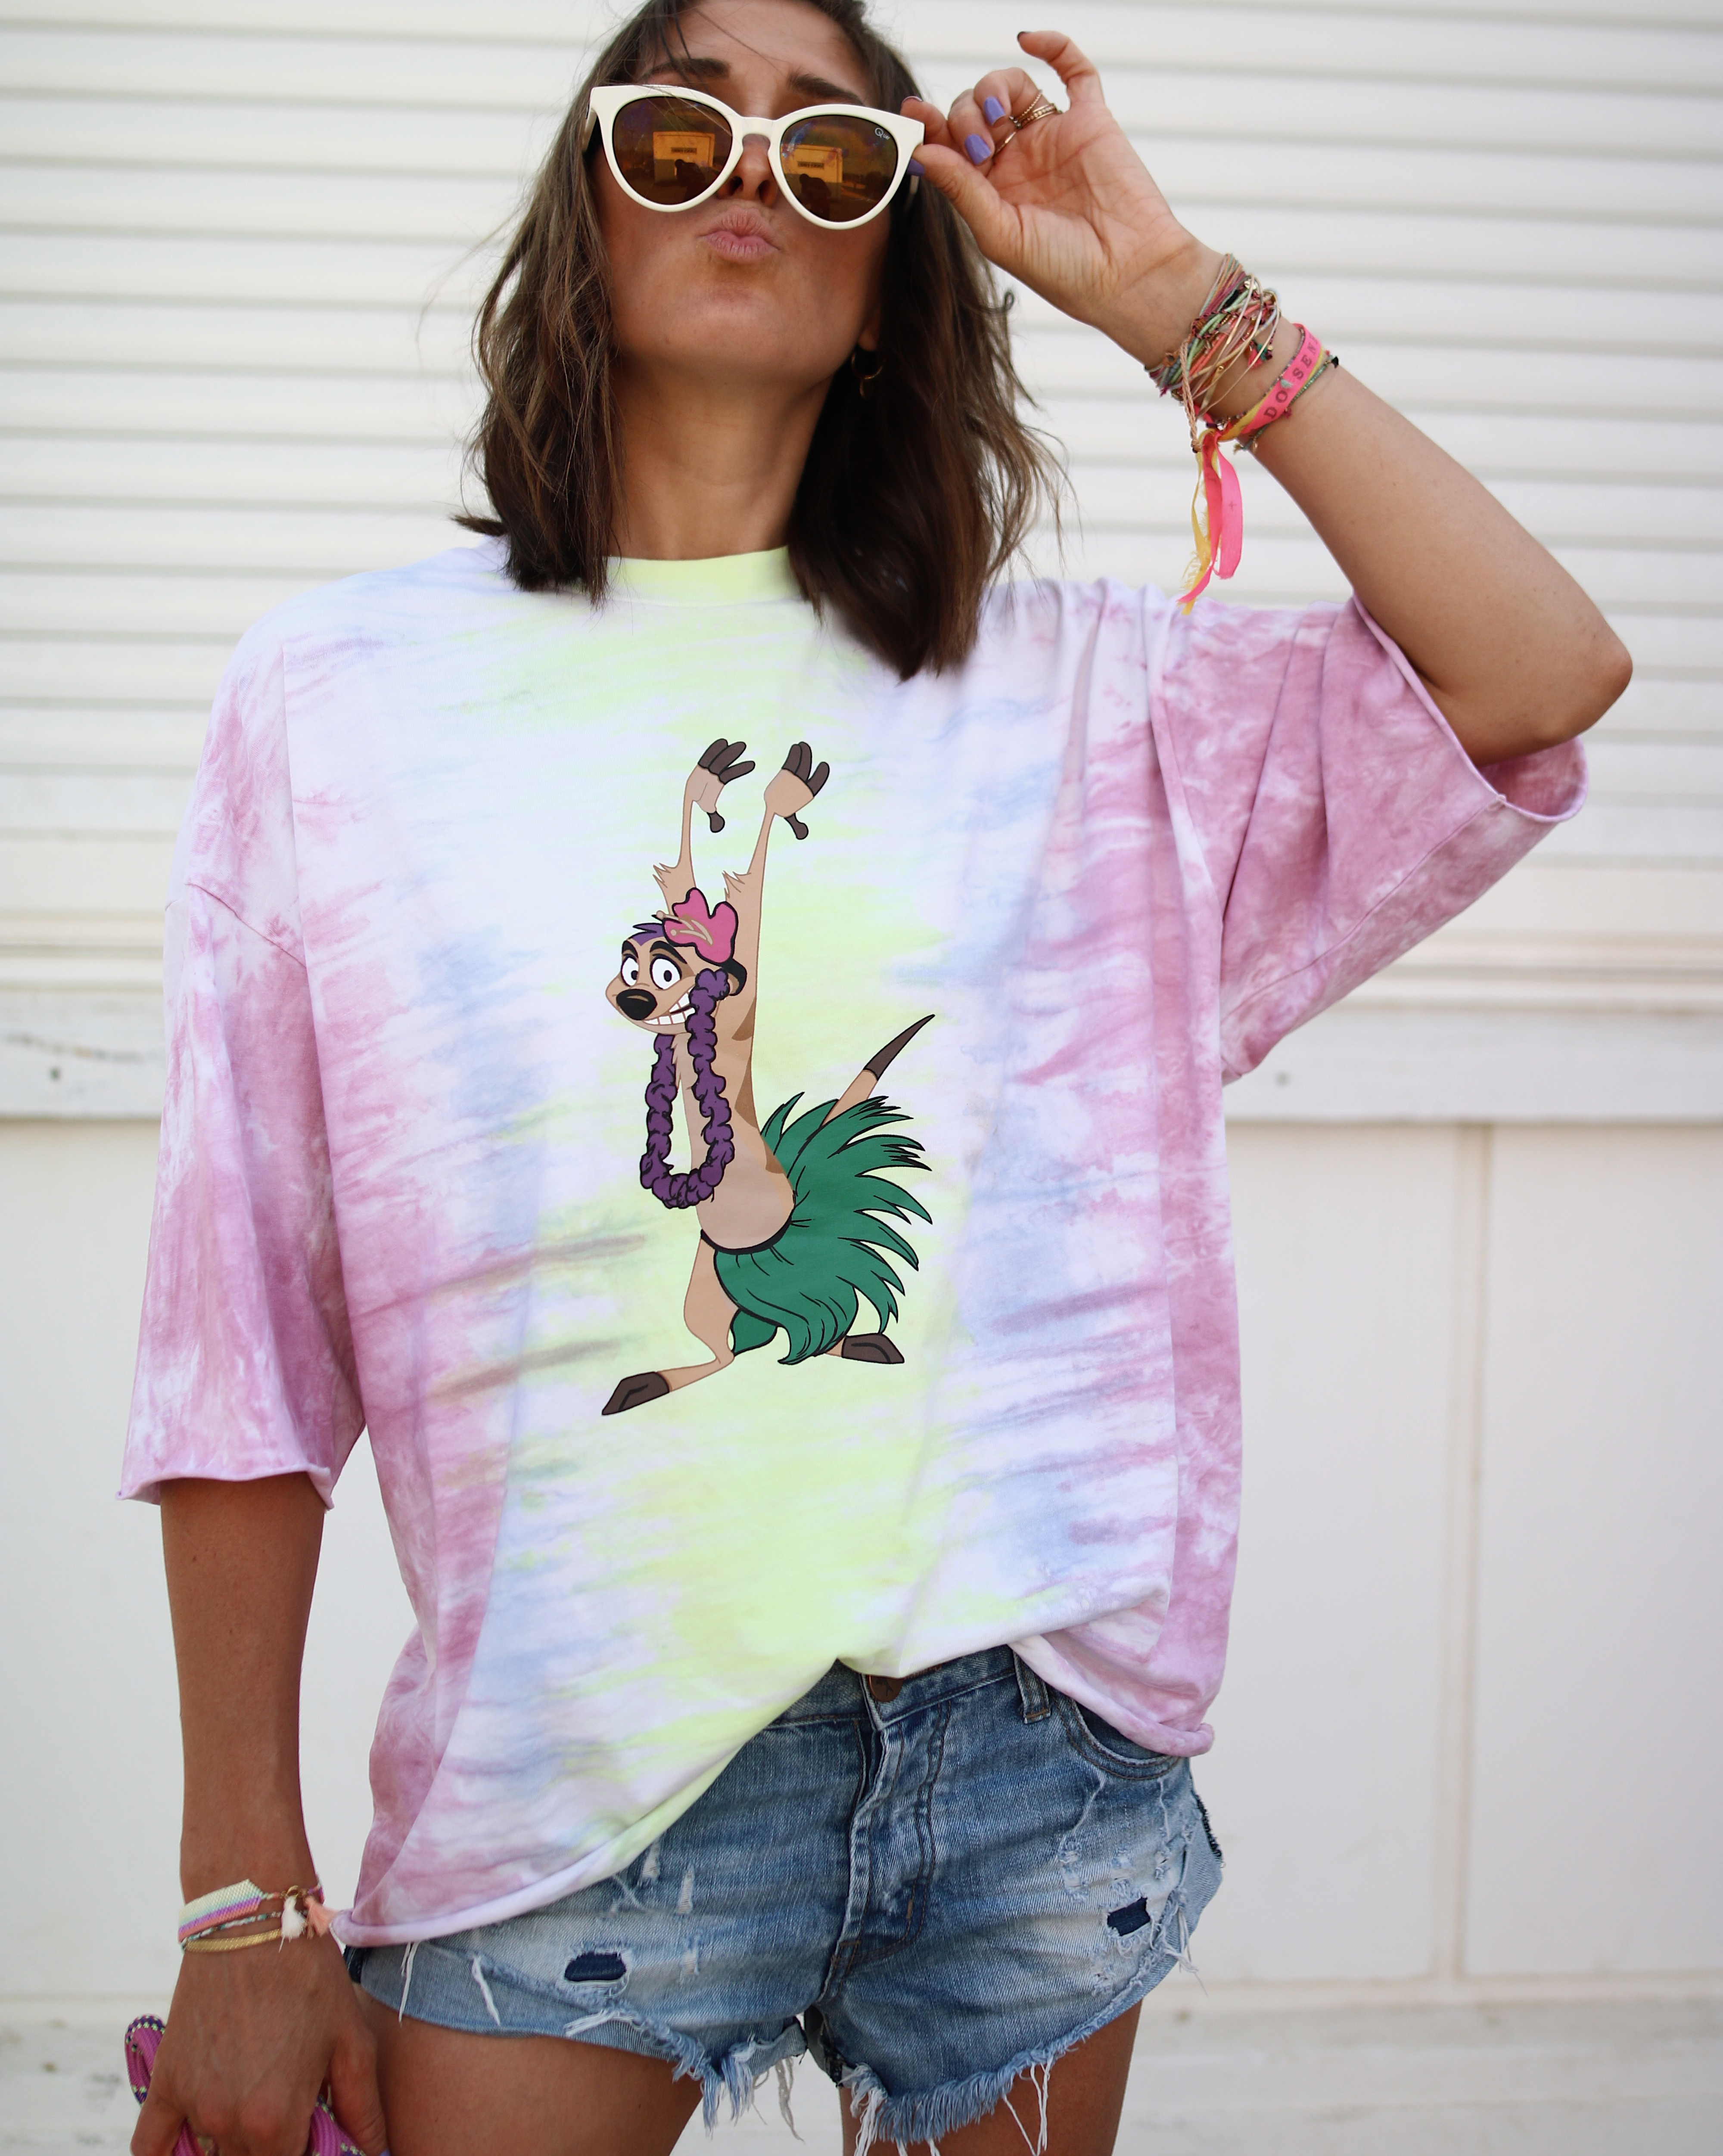 @chon.and.chon www.chonandchon.com - LION KING TEE - tie and dye tee, timon t shirt, tie and dye top, casual summer look